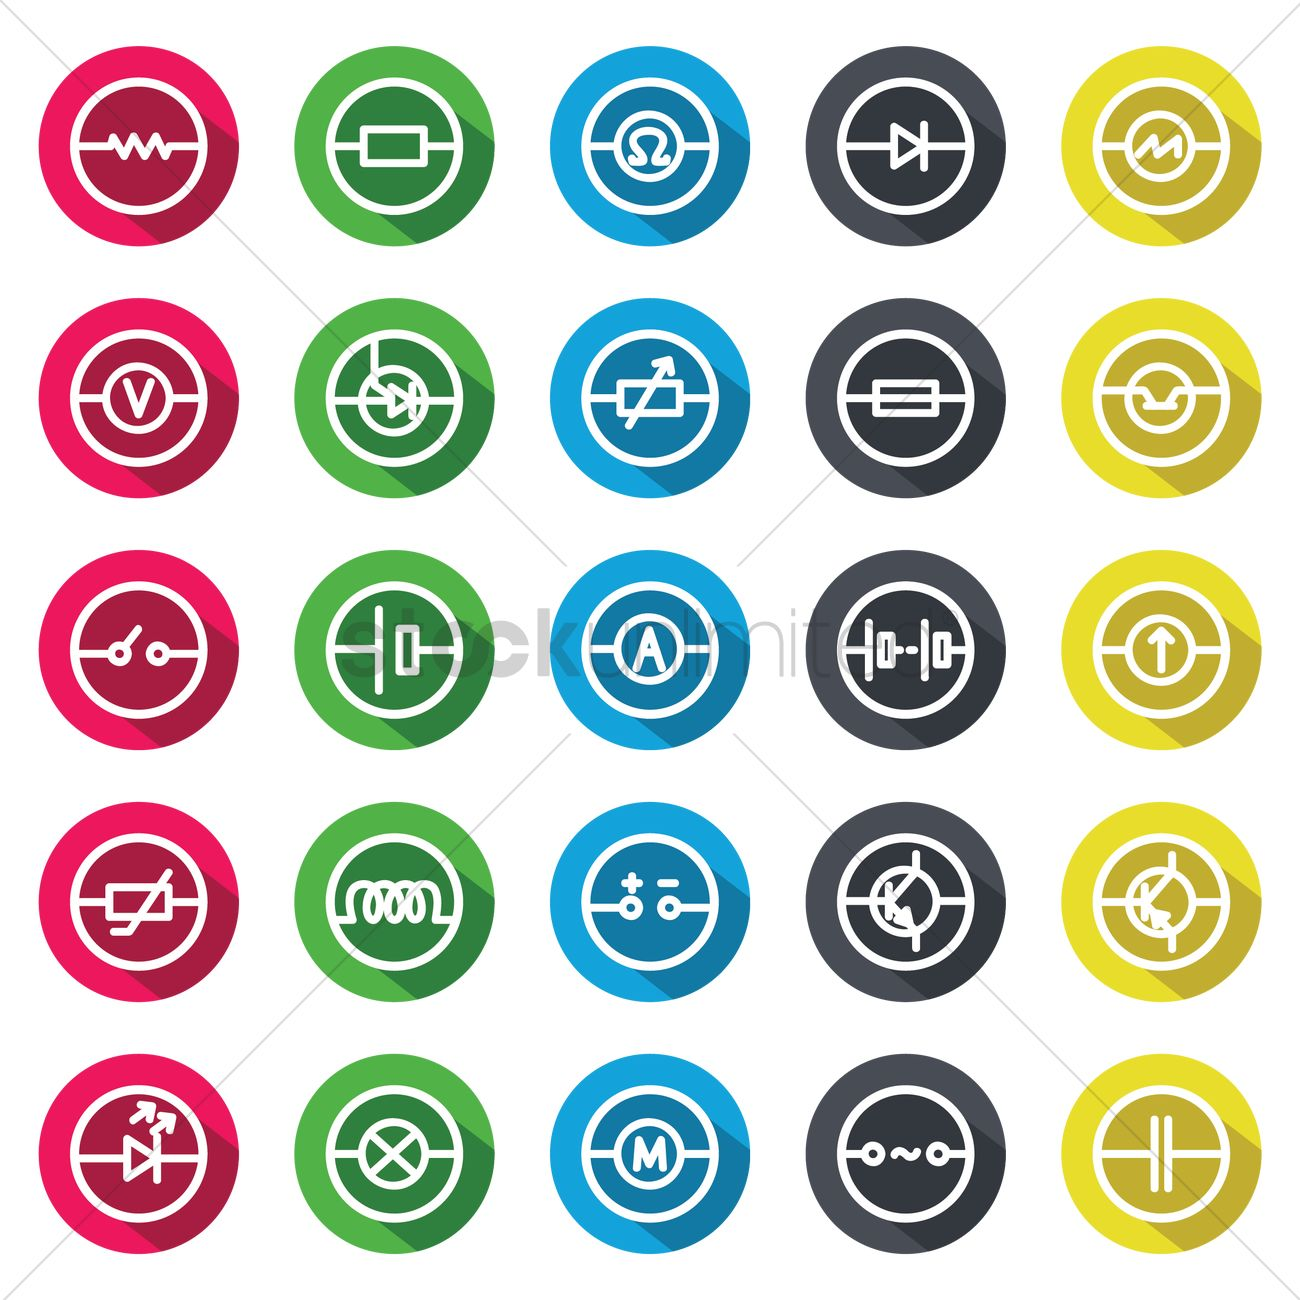 Electric Circuit Symbol Icon Set Vector Image 1248267 Stockunlimited Pictures Graphic